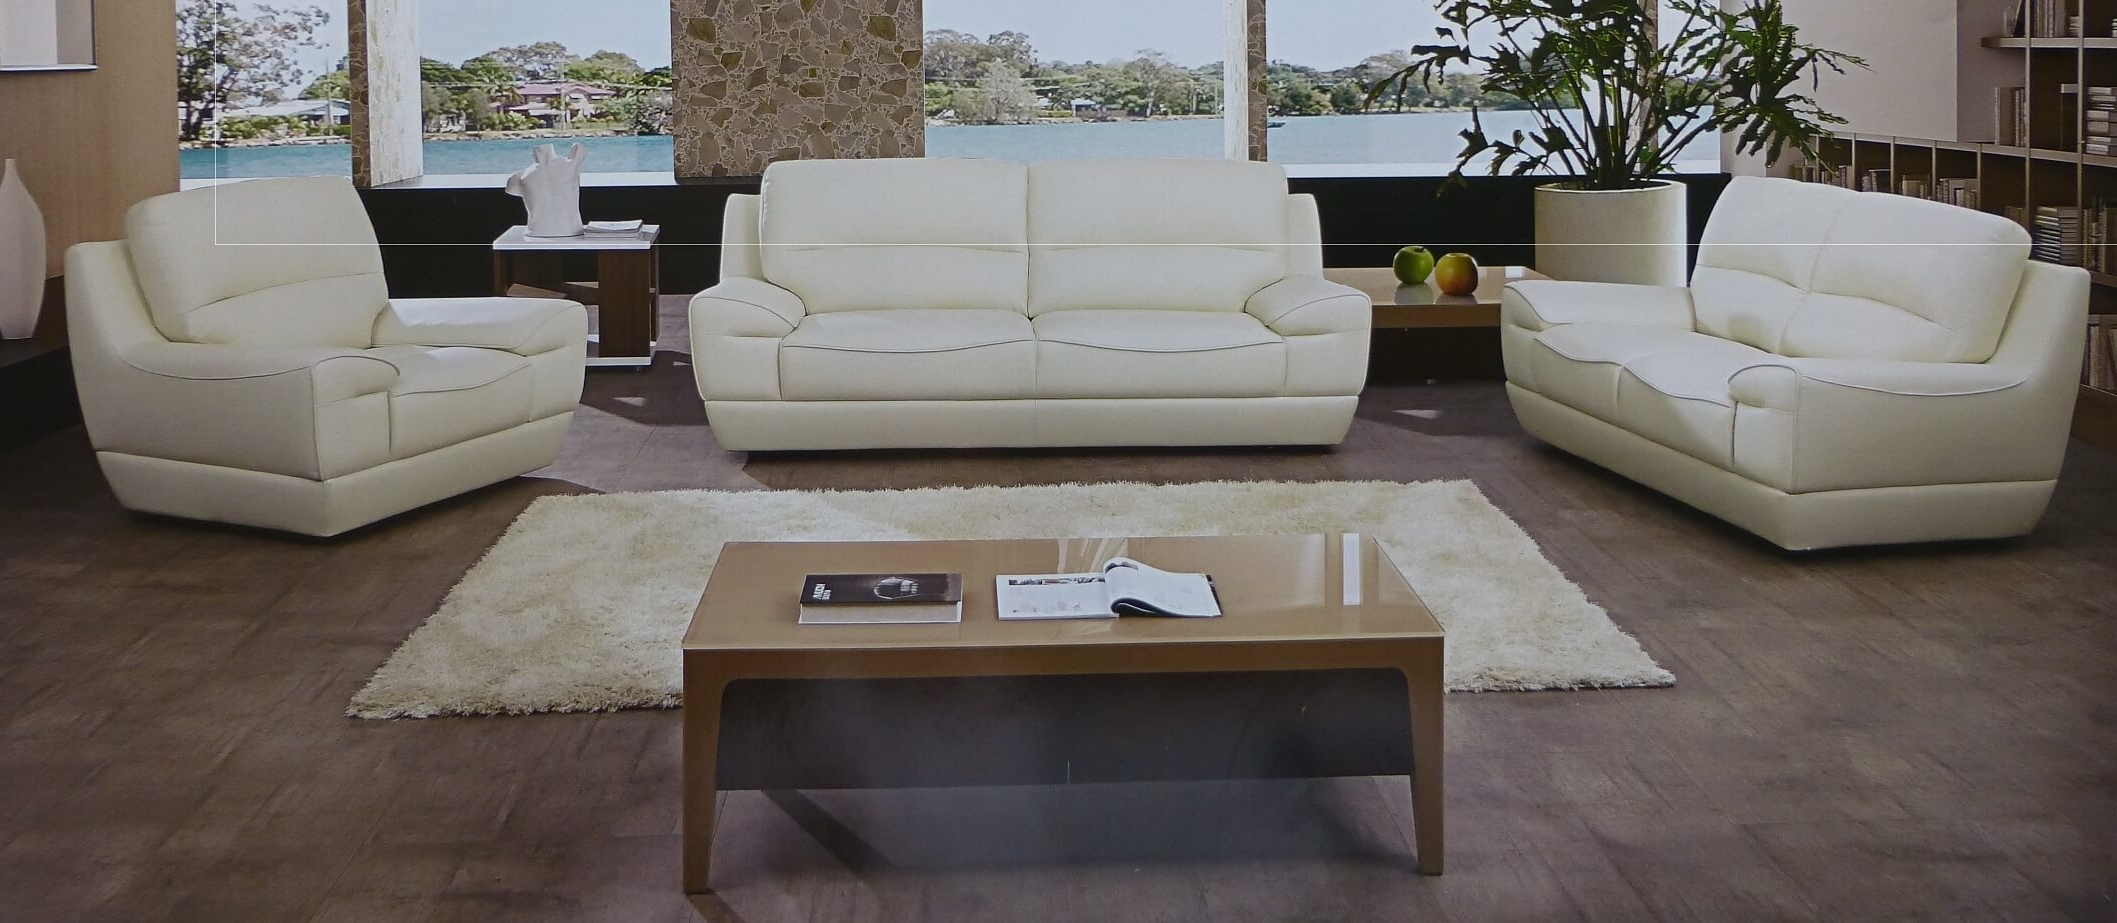 Best And Newest Sofa: Designs White Sofa And Loveseat White Fabric Sofa, White Inside Off White Leather Sofas (View 5 of 20)